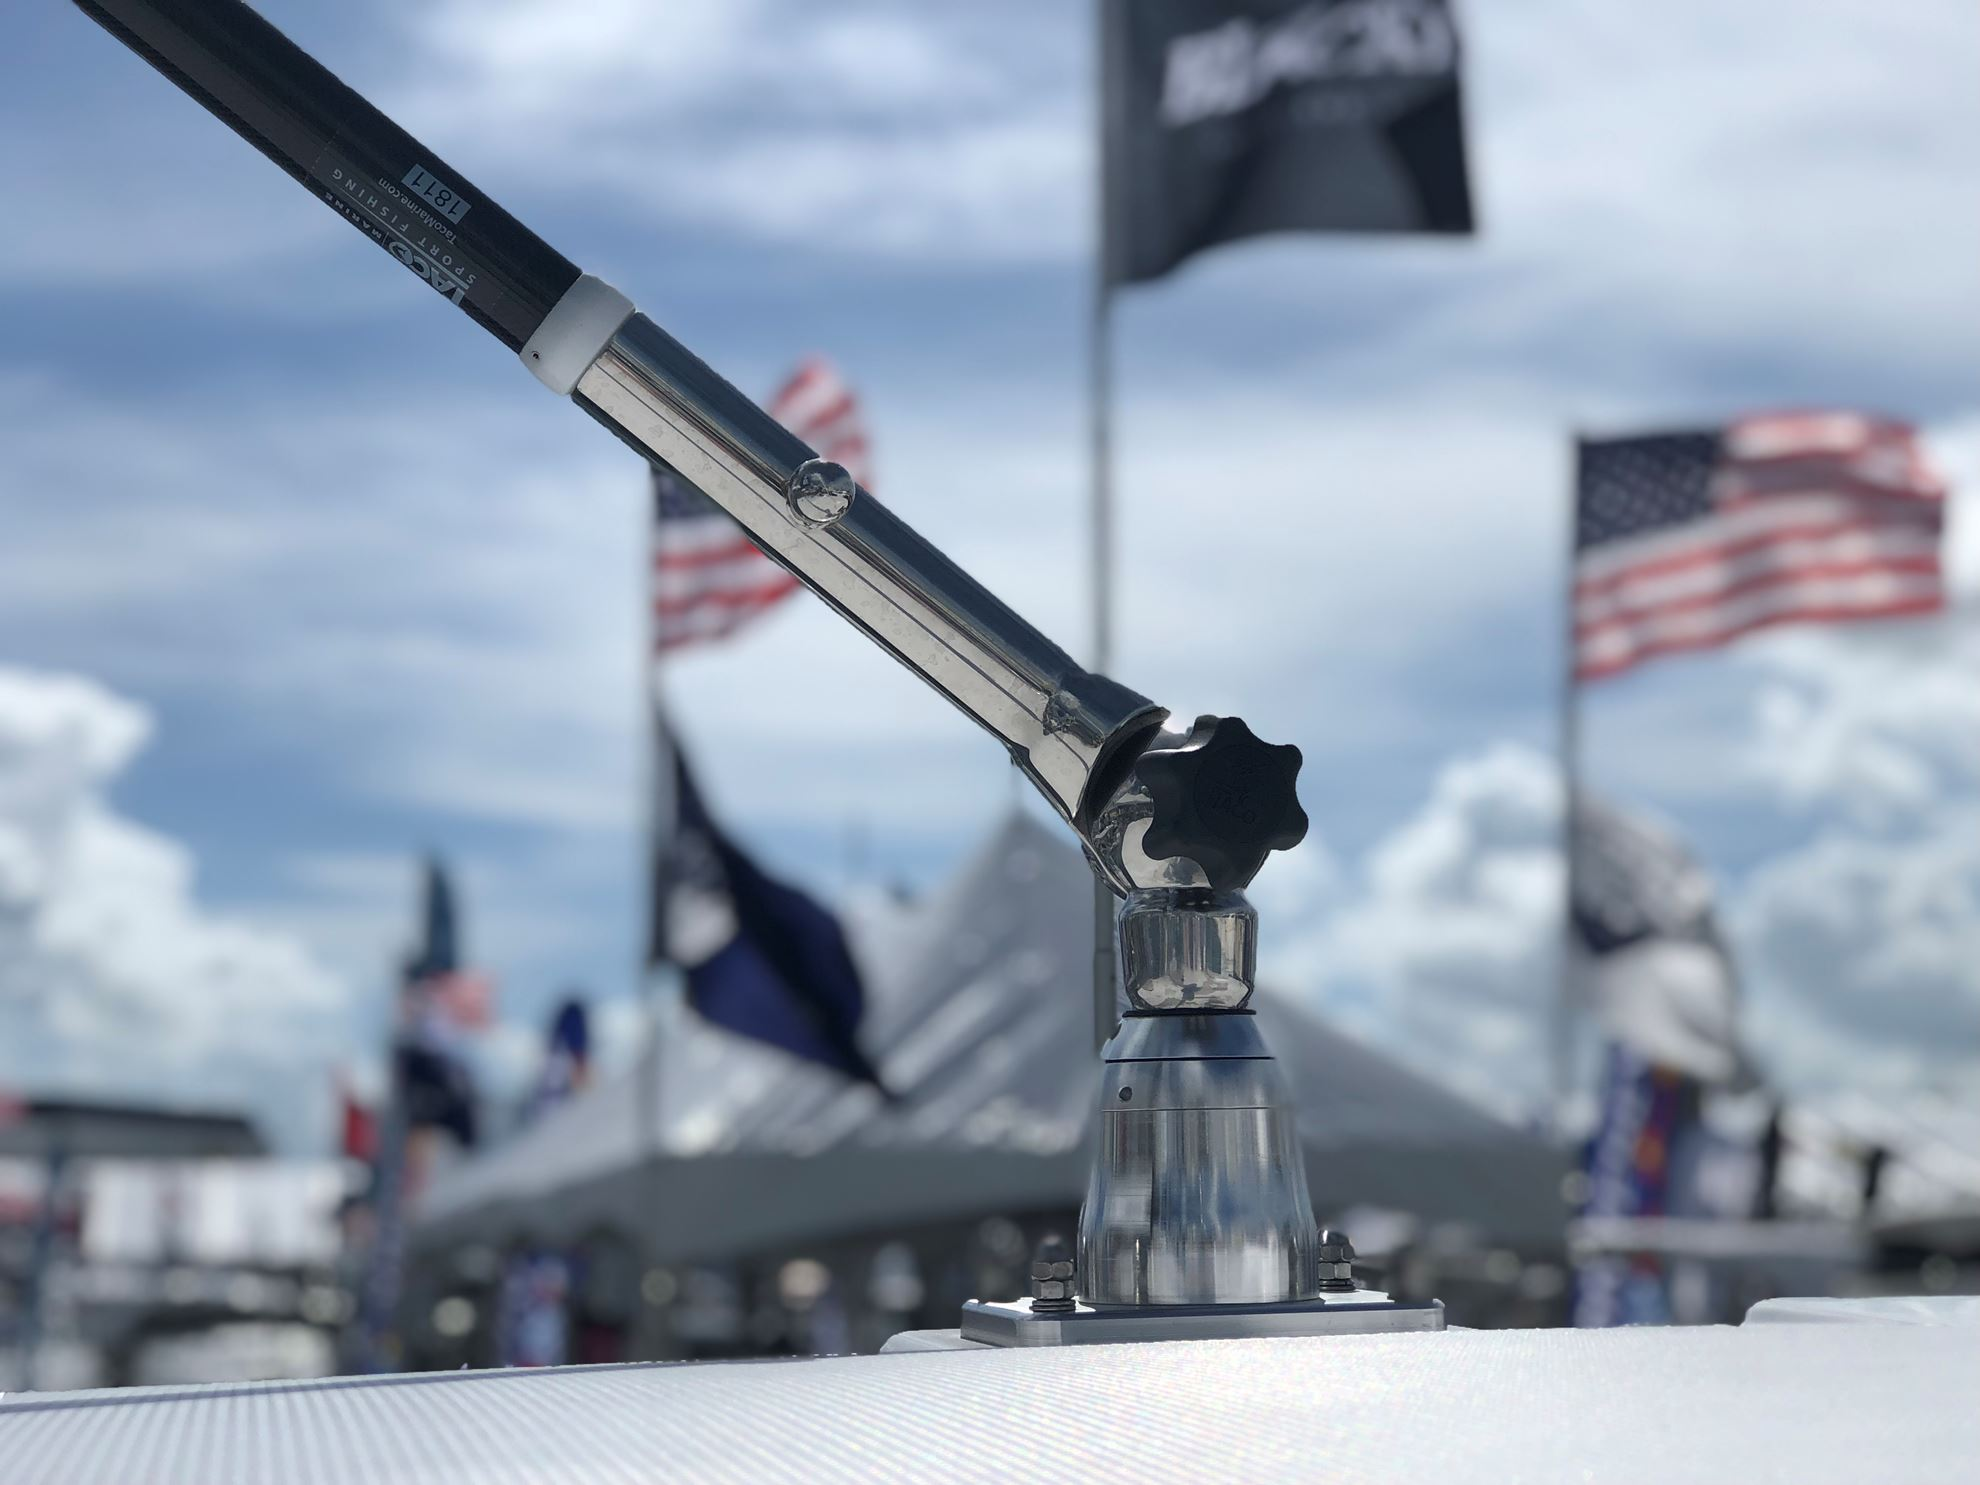 TACO Marine to Feature New Outrigger Line Tensioner at Upcoming Miami Boat Show